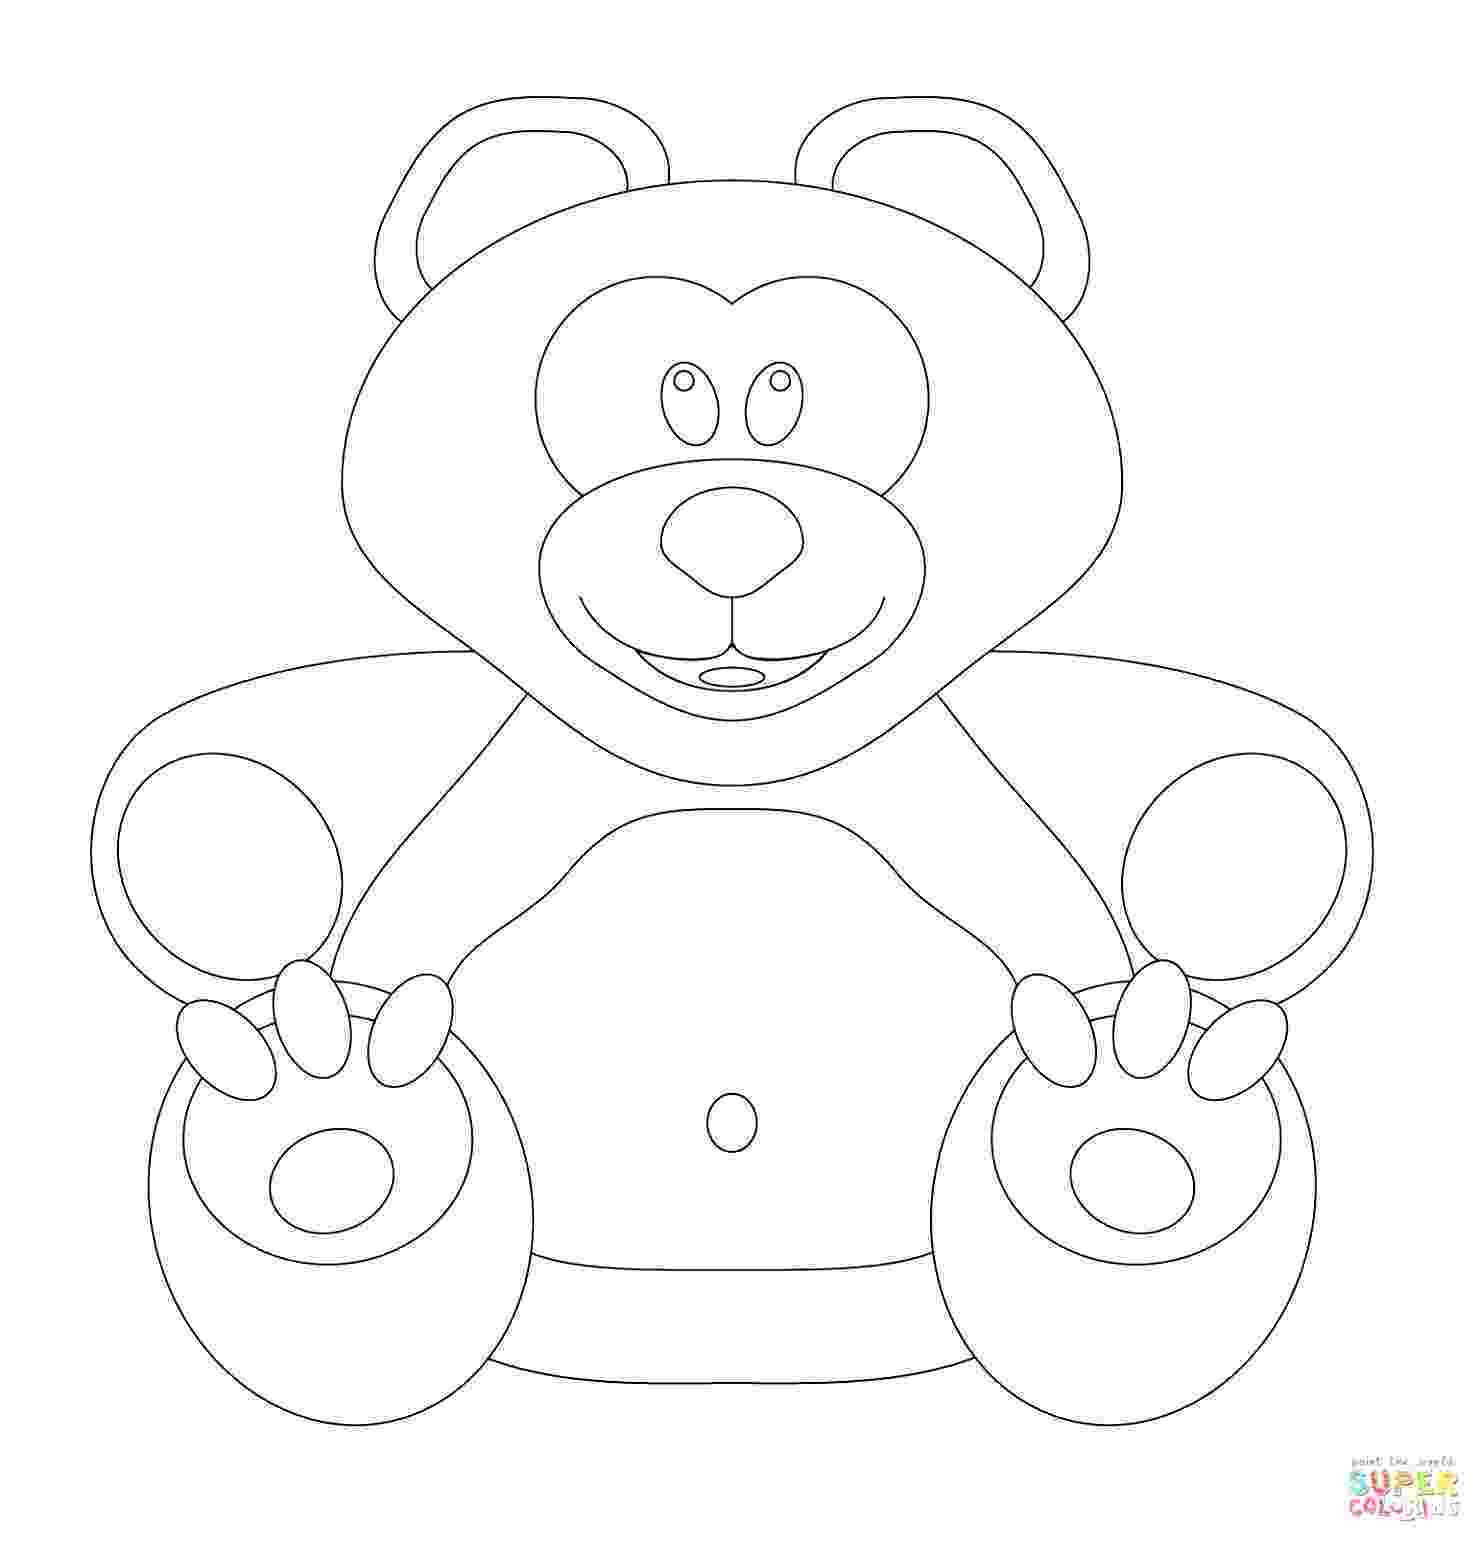 pudsey colouring pages pudsey bear colouring template classroom ideas colouring pages pudsey